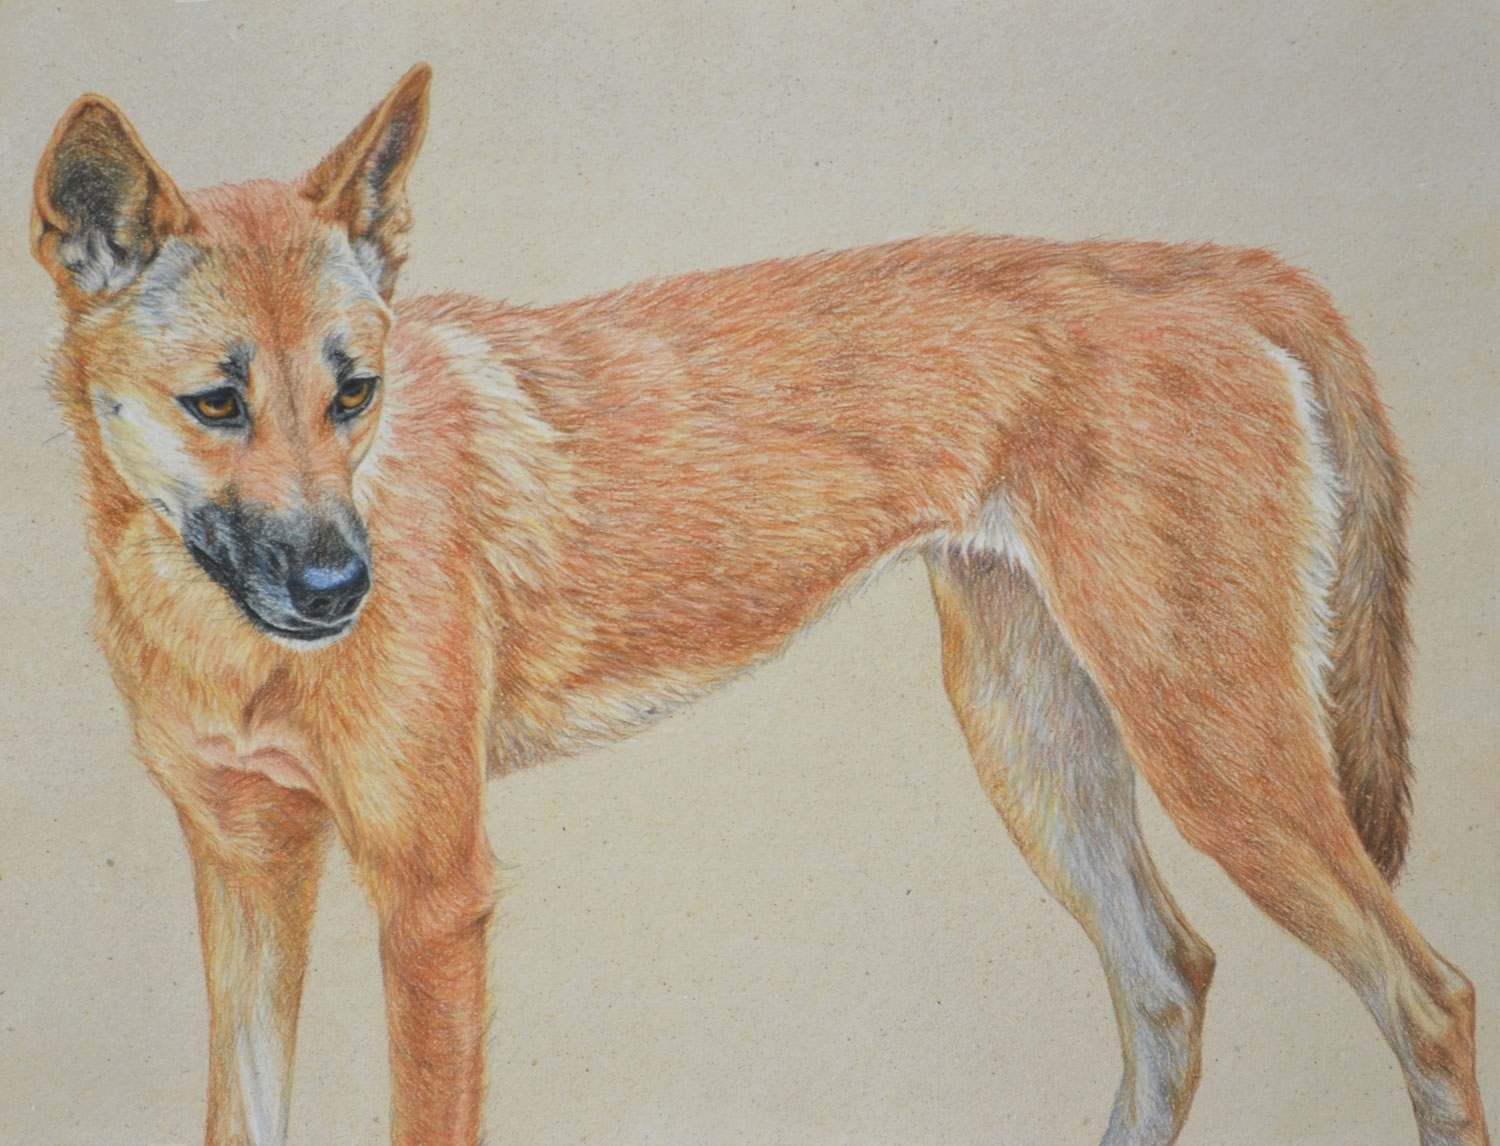 DINGO III  41 x 61 CM, PASTEL ON HANDMADE PAPER  Available as a limited edition print  $1,100